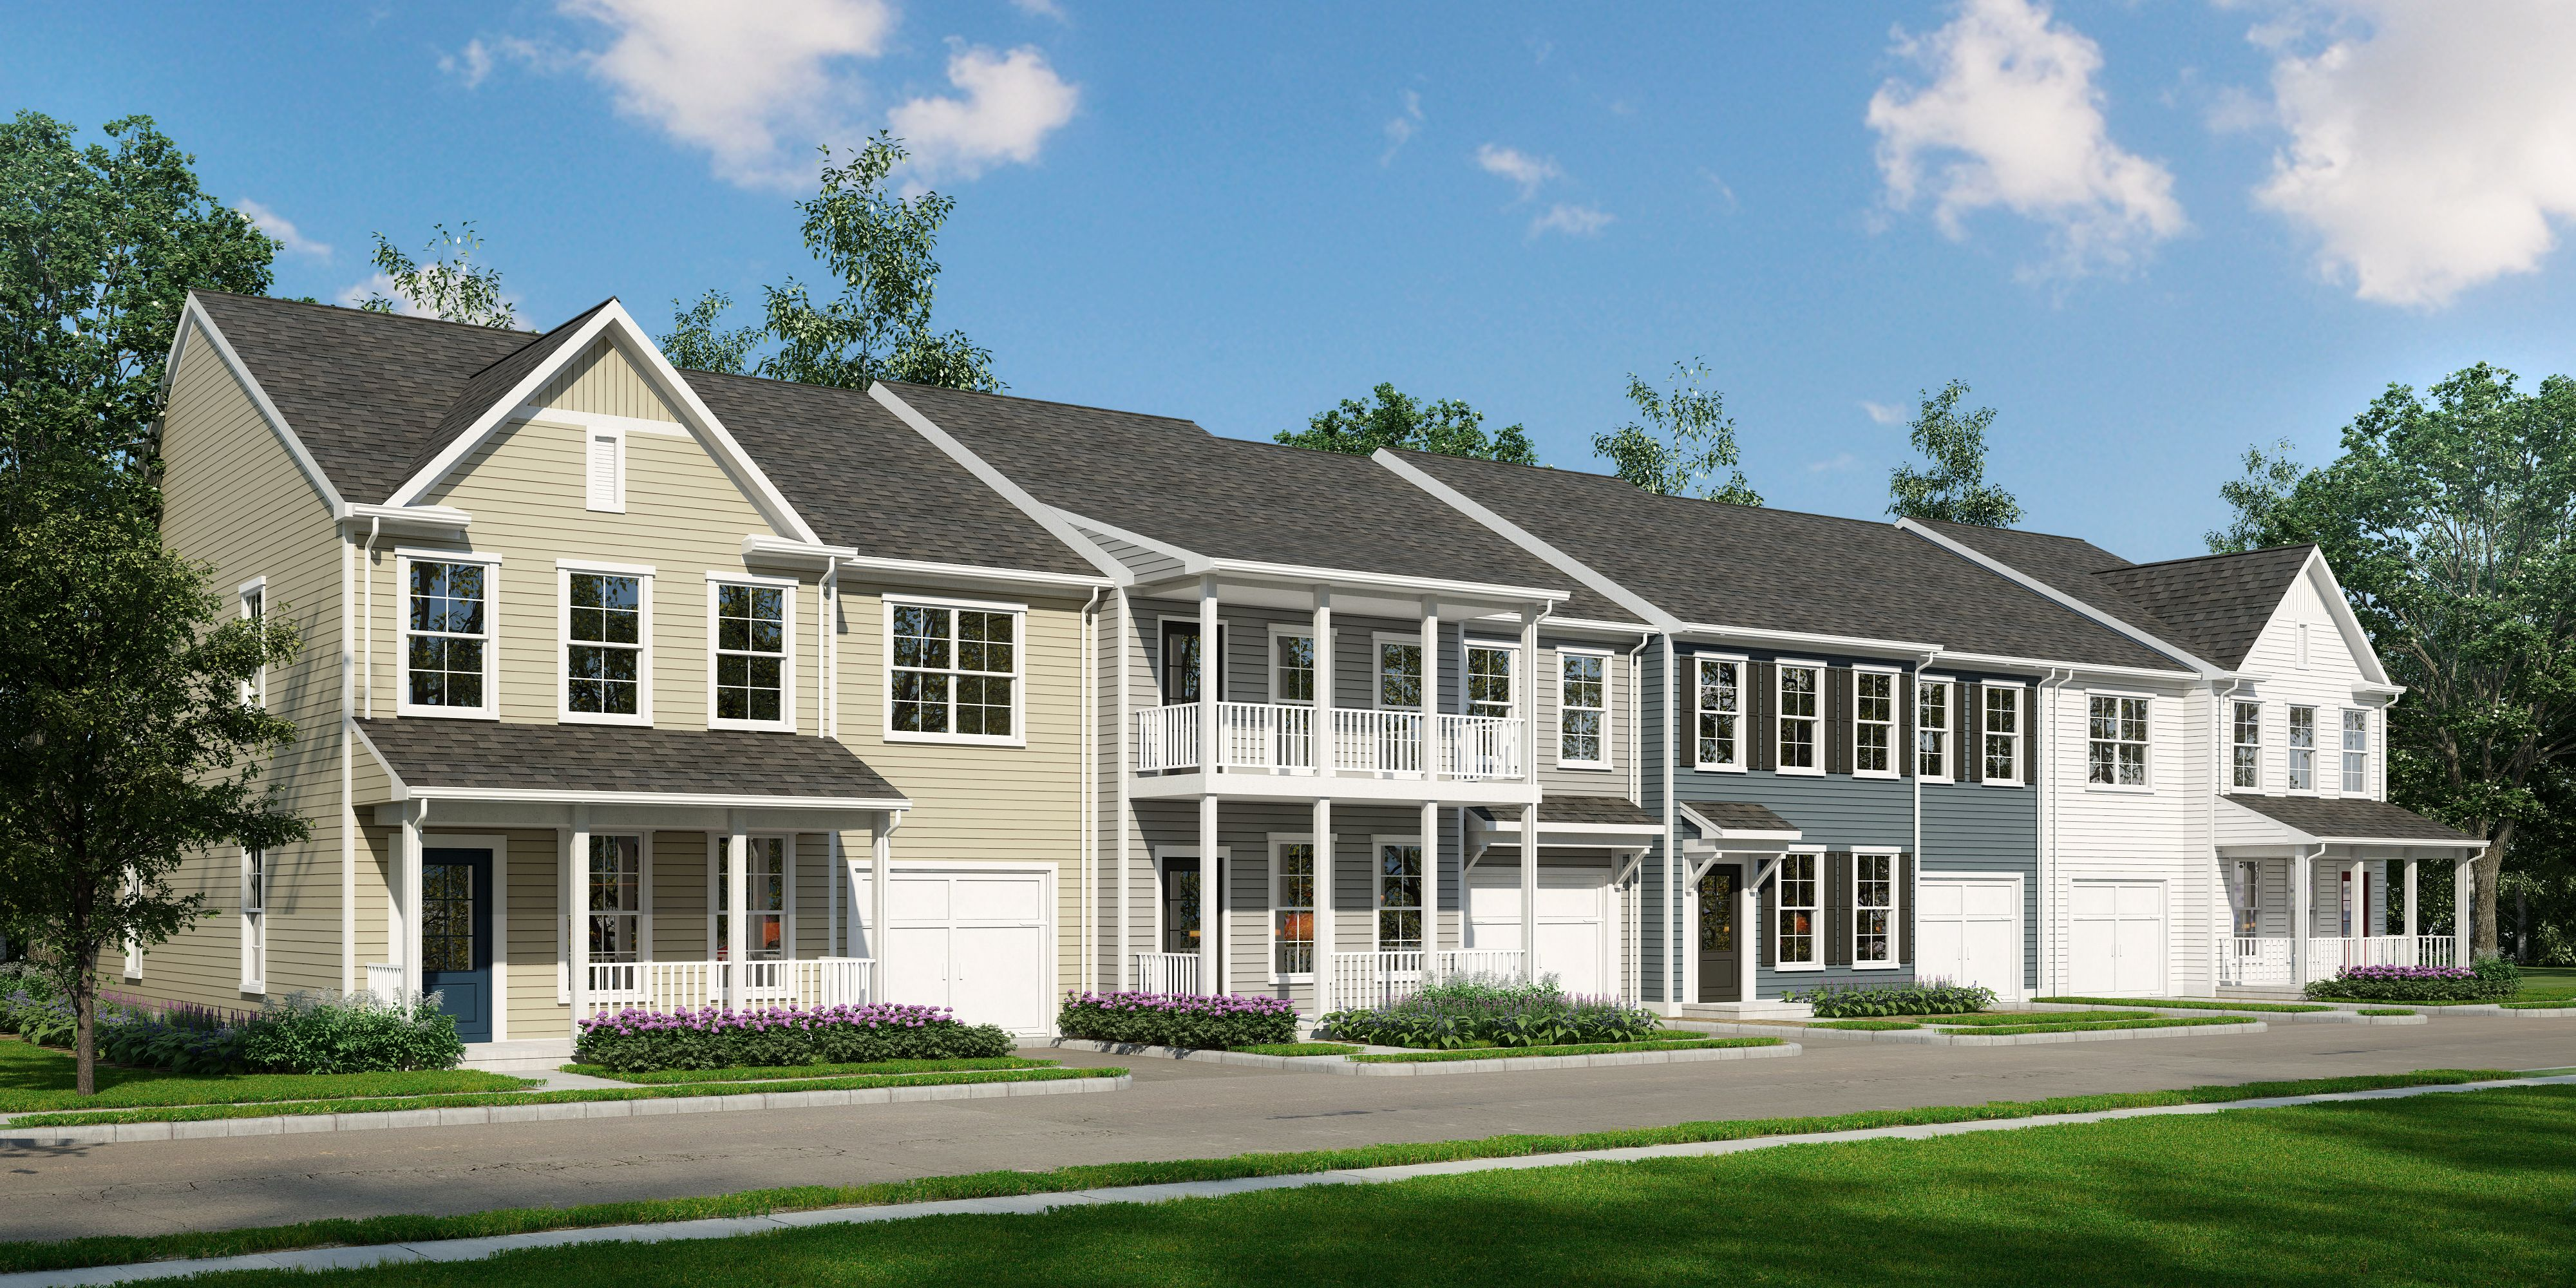 Clifton Townhomes In Christiansburg Va New Homes By Stateson Homes